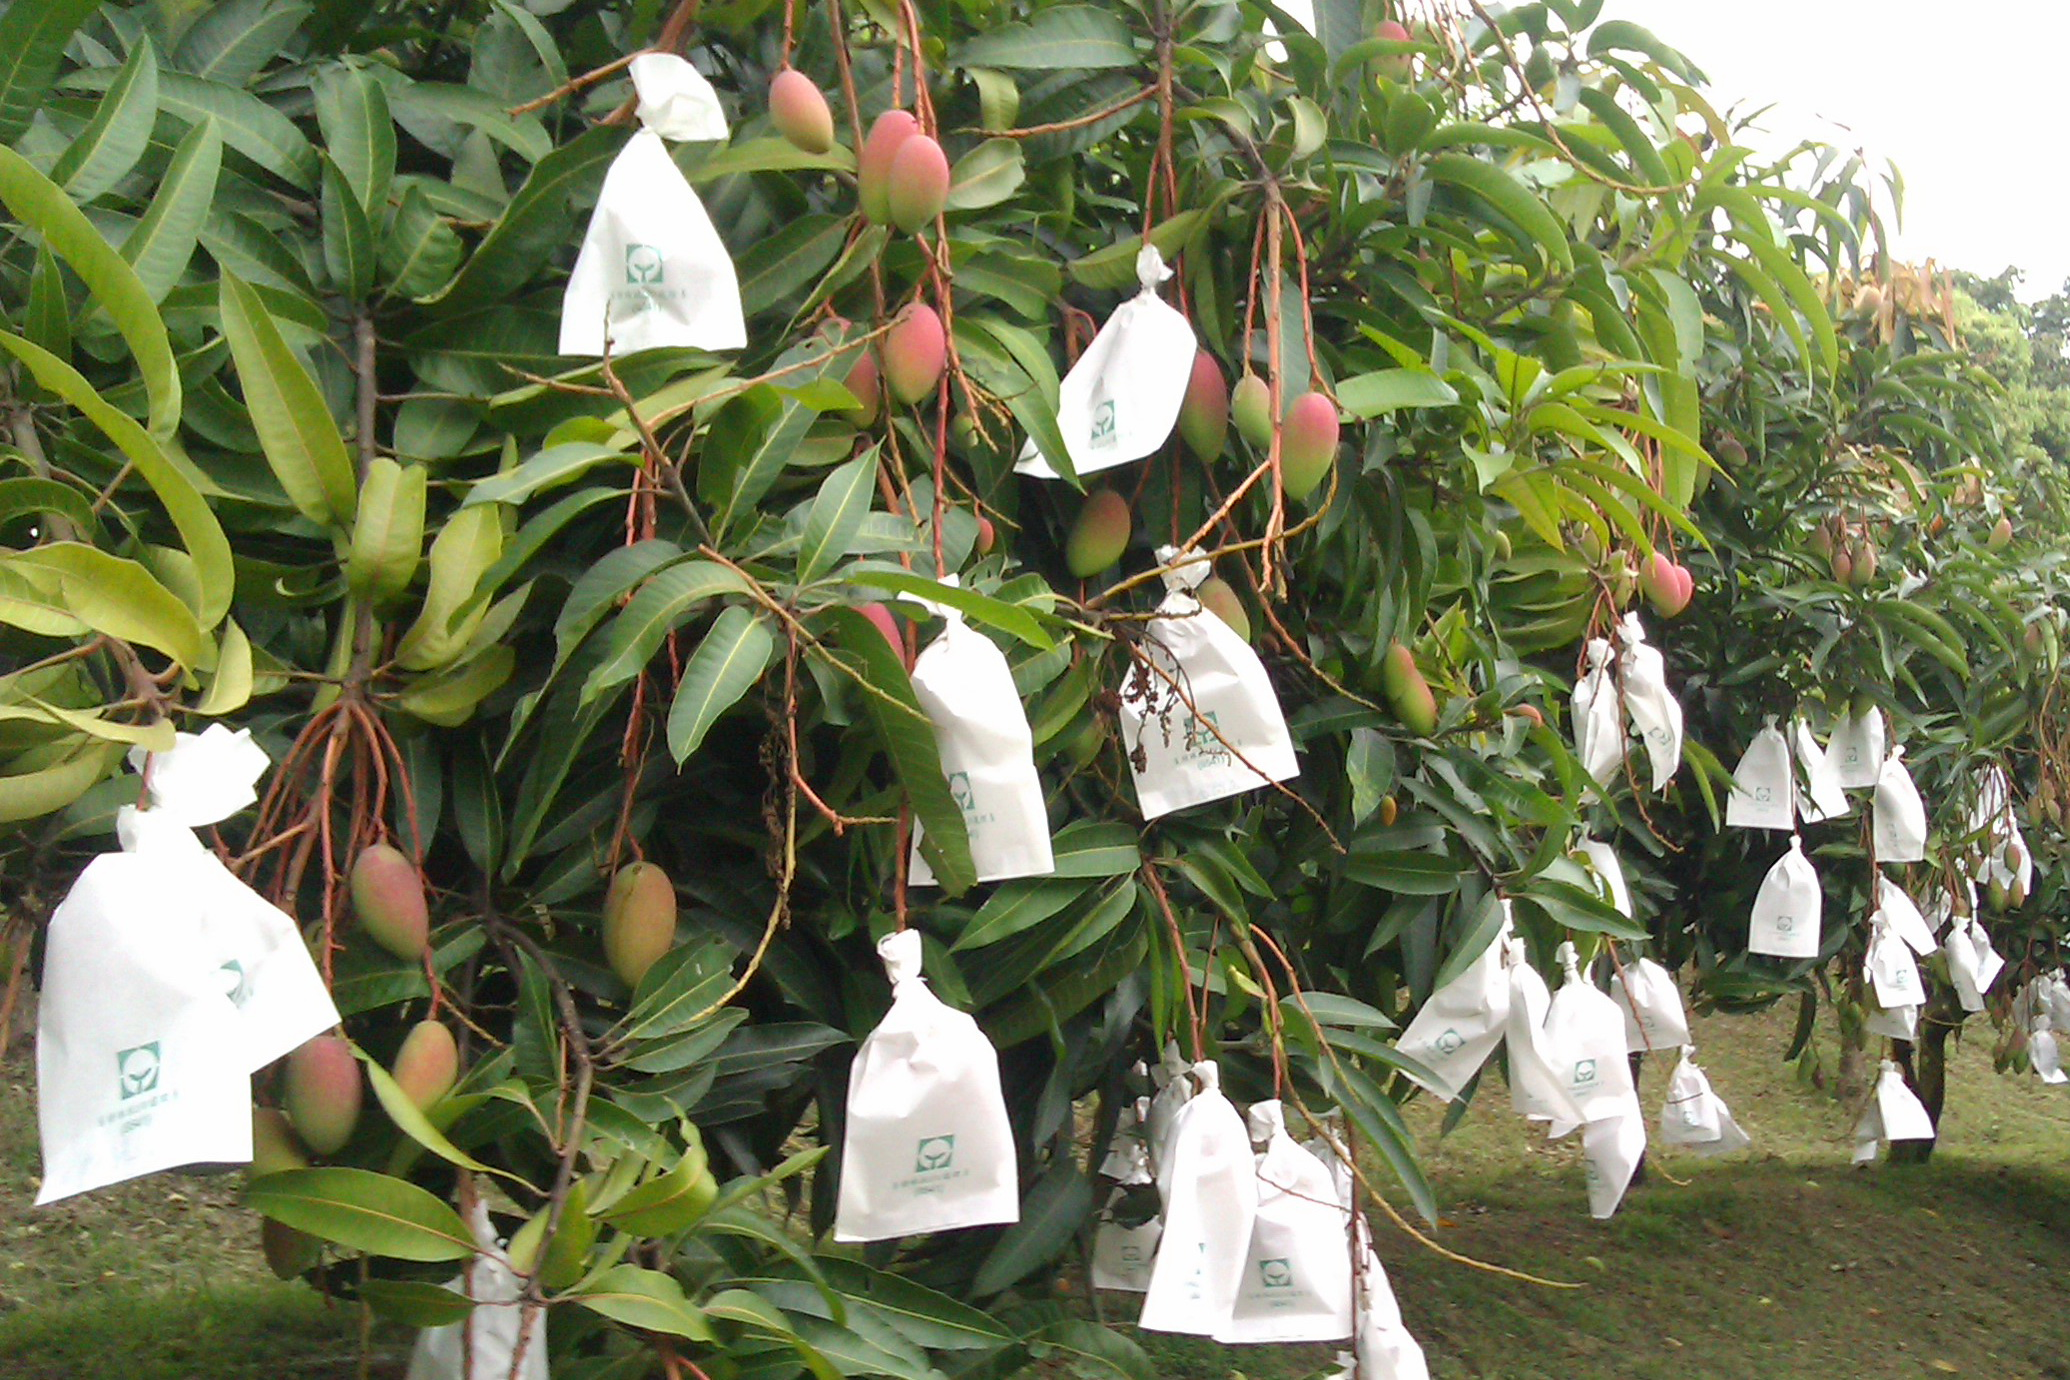 upload.wikimedia.org_wikipedia_commons_6_69_mangoes_in_paper_bags.jpg